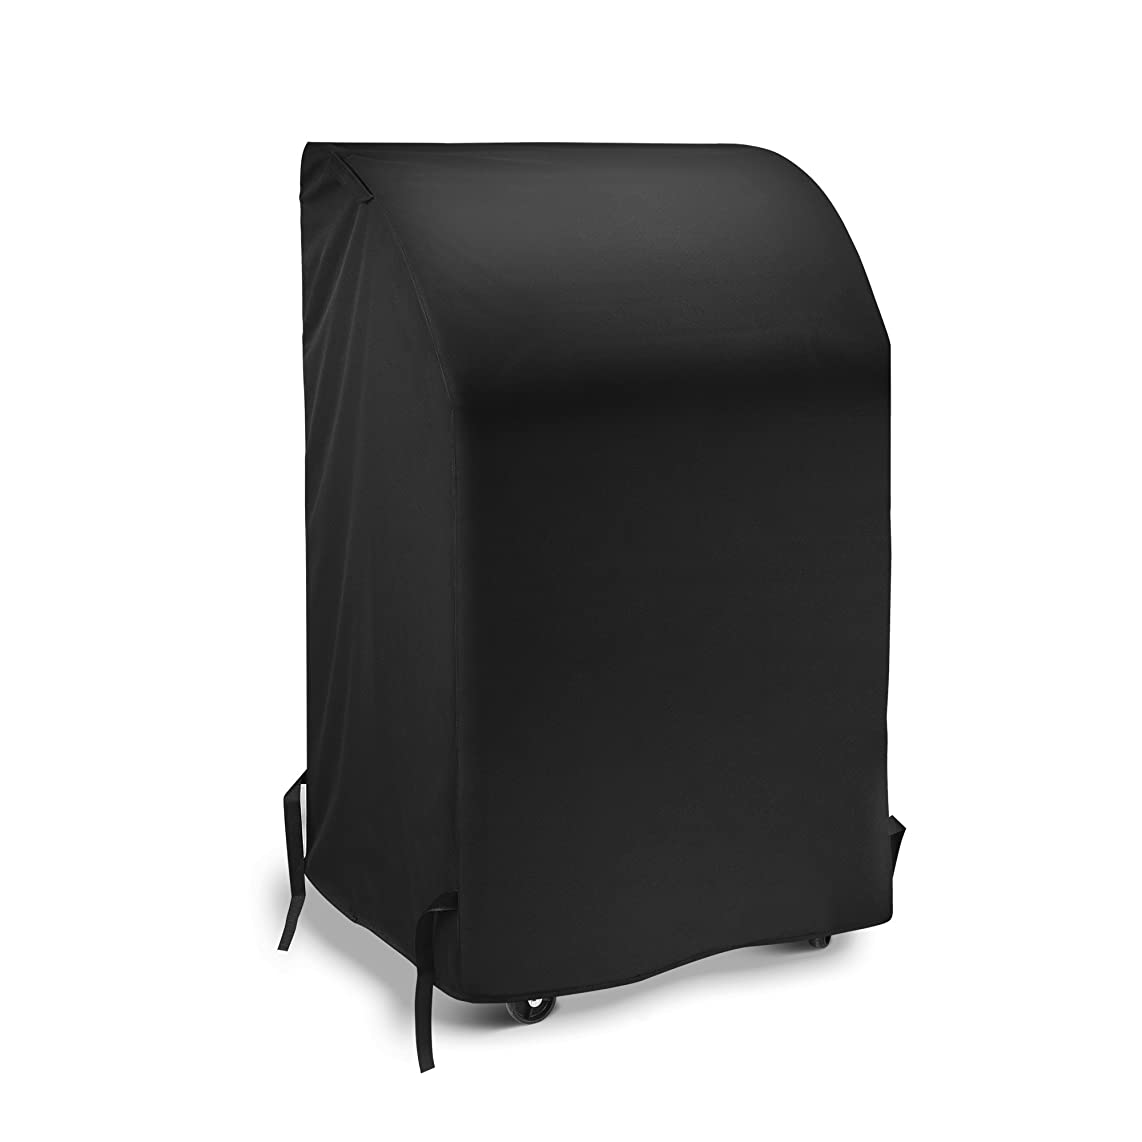 iDepot 2 Burner Gas Grill Cover 32 Inch, Heavy Duty Waterproof Small Space BBQ Cover for Grills with Collapsed Side Tables, All Weather Protection for Weber Char-Broil Nexgrill and More, Black